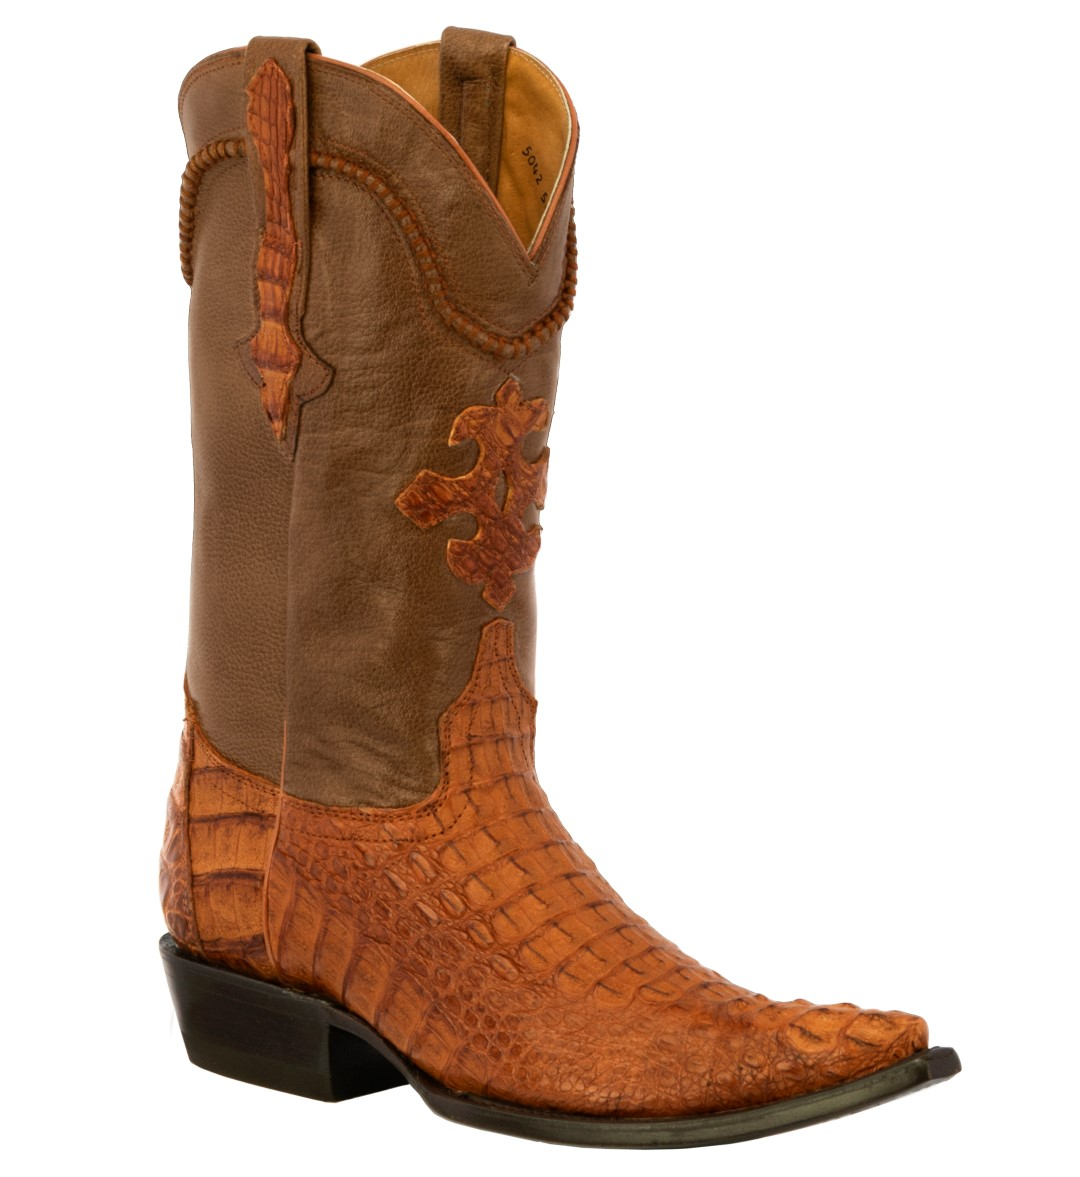 33f50839700 Details about Mens Rust Brown Genuine Crocodile Alligator Skin Leather  Cowboy Boots Western